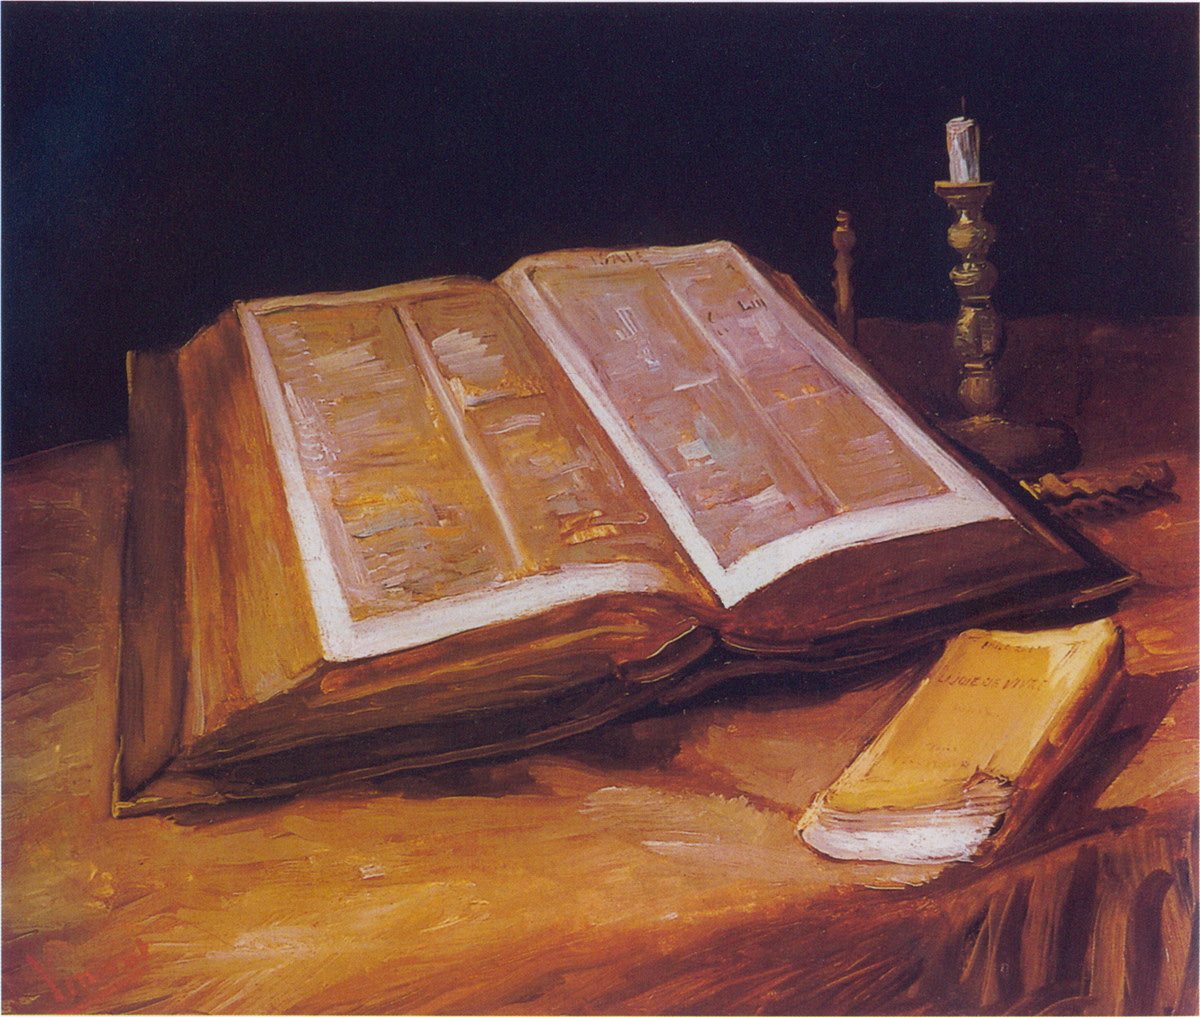 THE HOLY BIBLE AS PAINTED BY VINCENT VAN GOGH